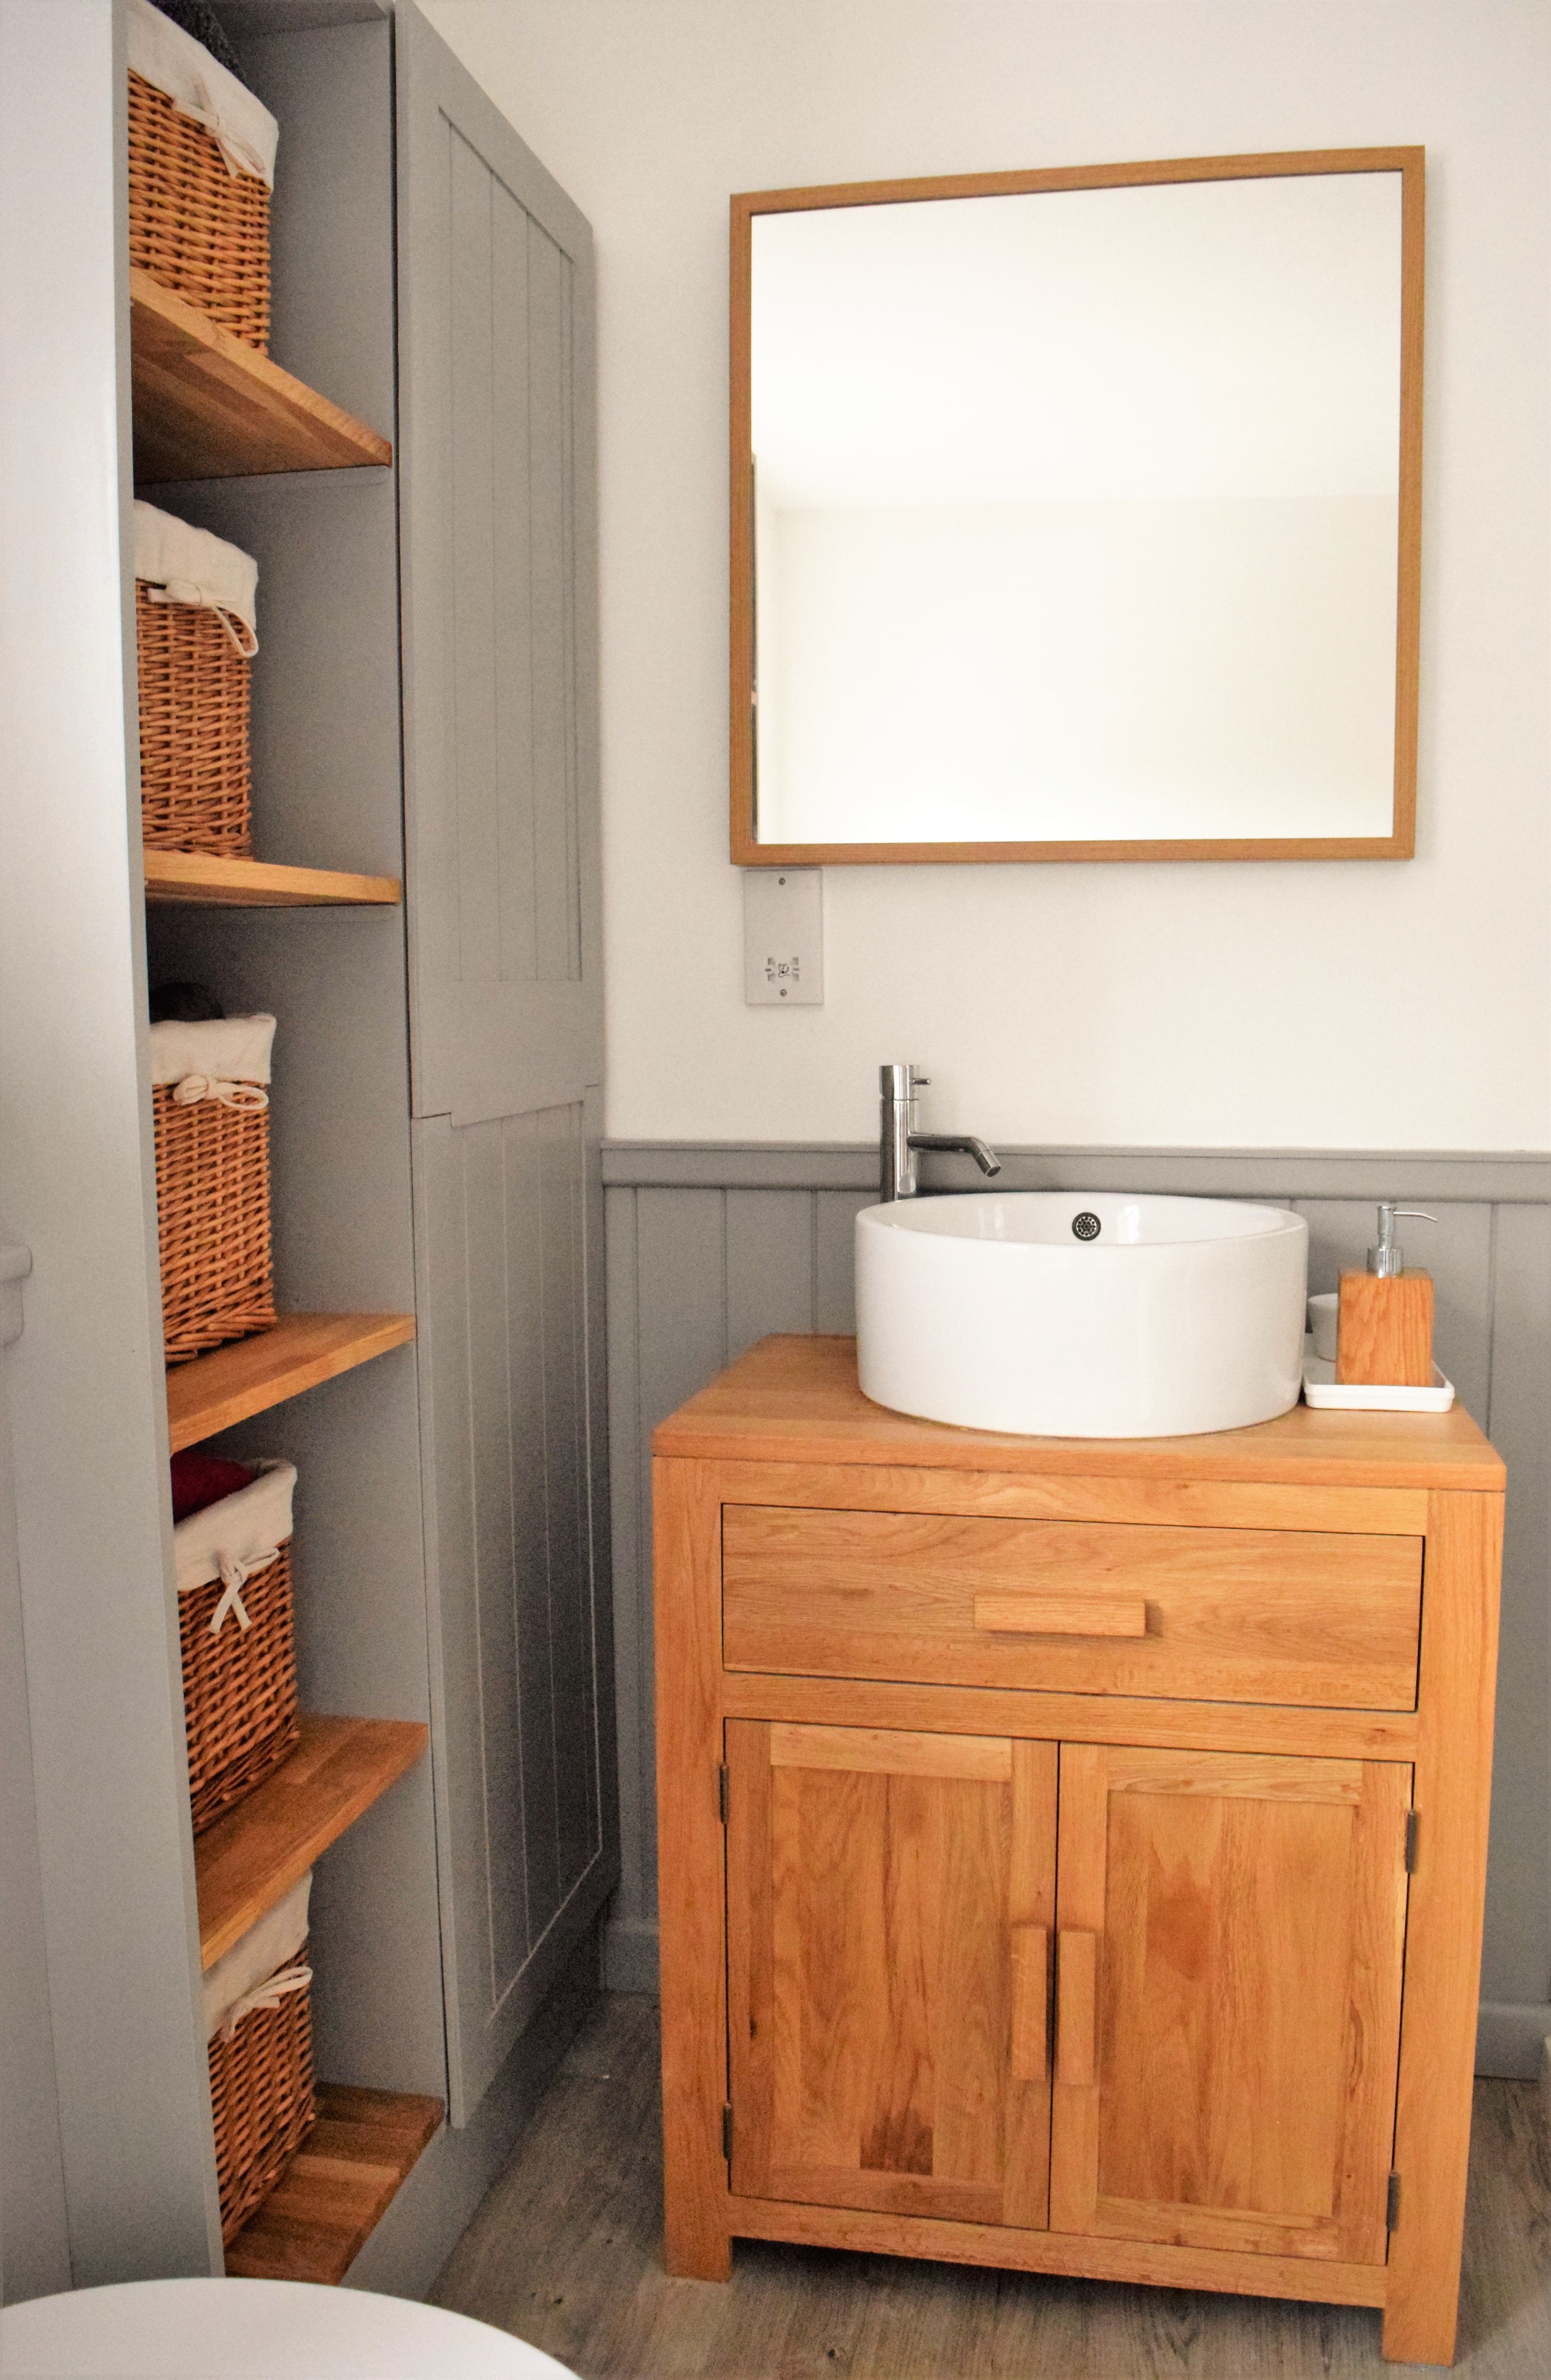 Oak Cabinet With Ceramic Basin And Homemade Bathroom Shelves Cupboard To Hide The Boiler Grey Tong Small Downstairs Toilet Bathroom Cupboards Small Bathroom